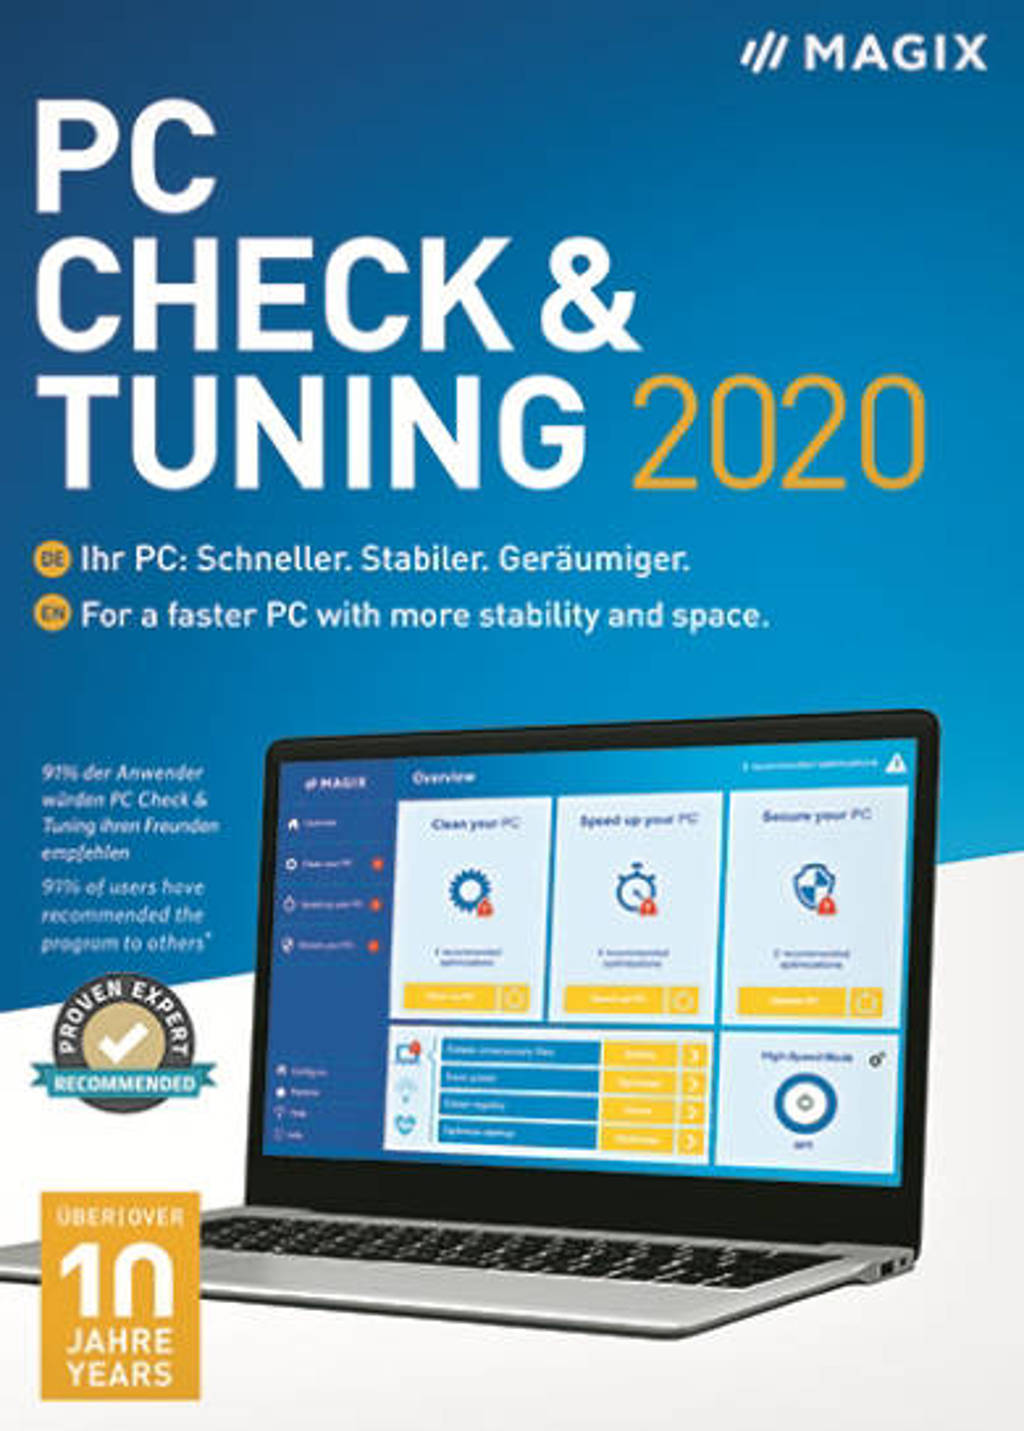 Magix PC check & tuning 2020 (PC)